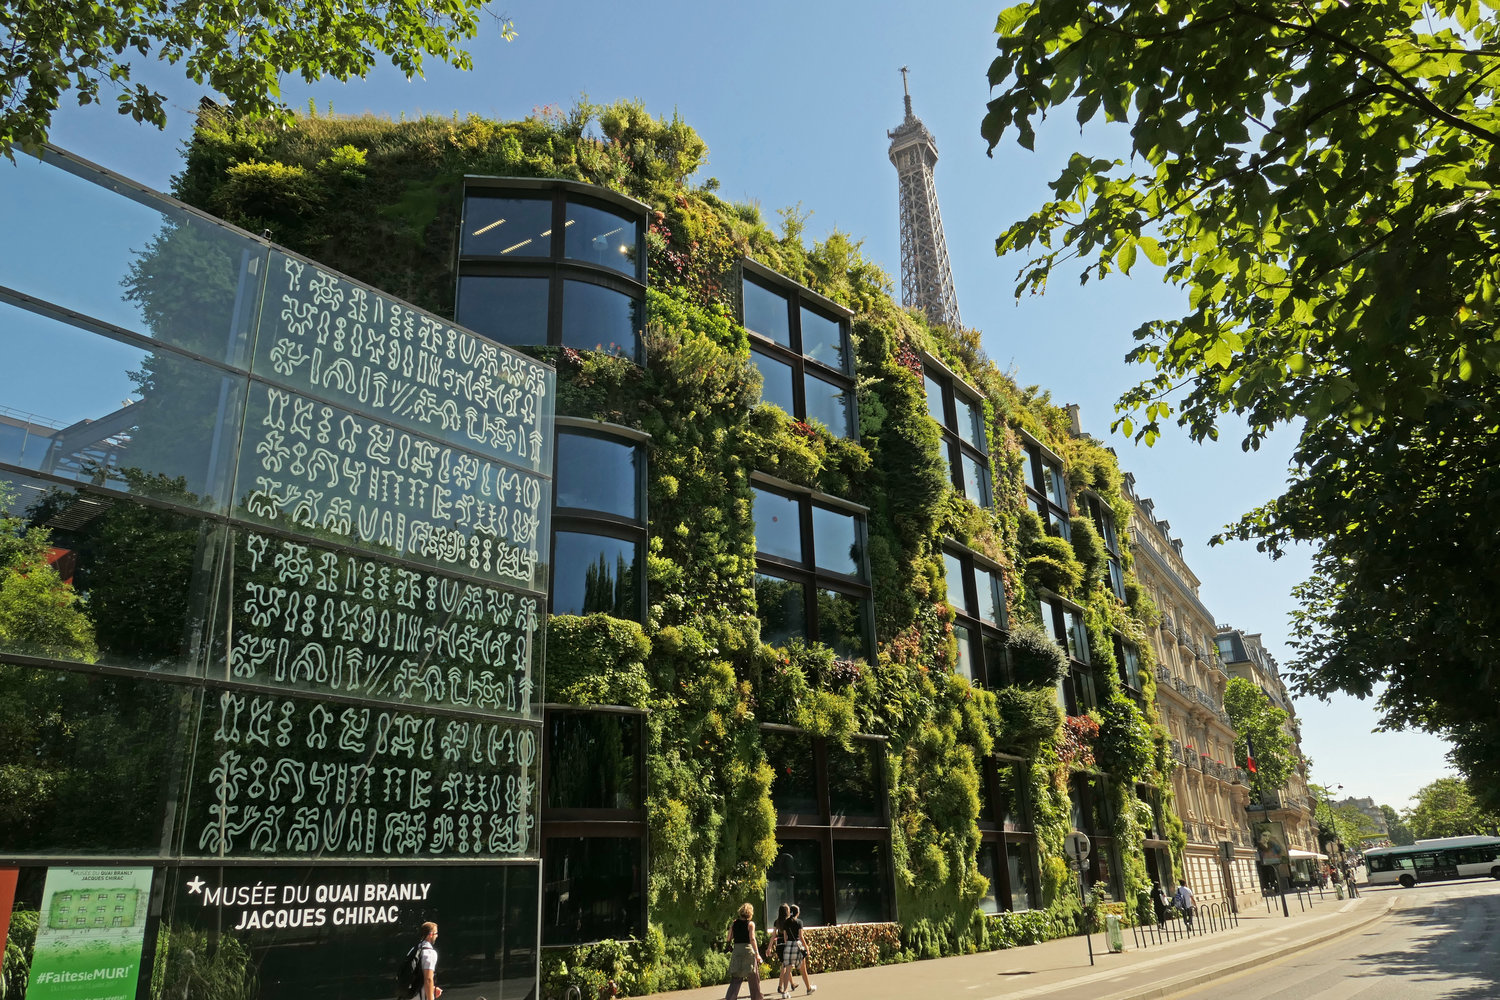 https://www.arts-in-the-city.com/wp-content/uploads/2019/07/quaibranlyjacqueschiracmuseumverticalgarden13yearsafteritscreationjune2017.jpg